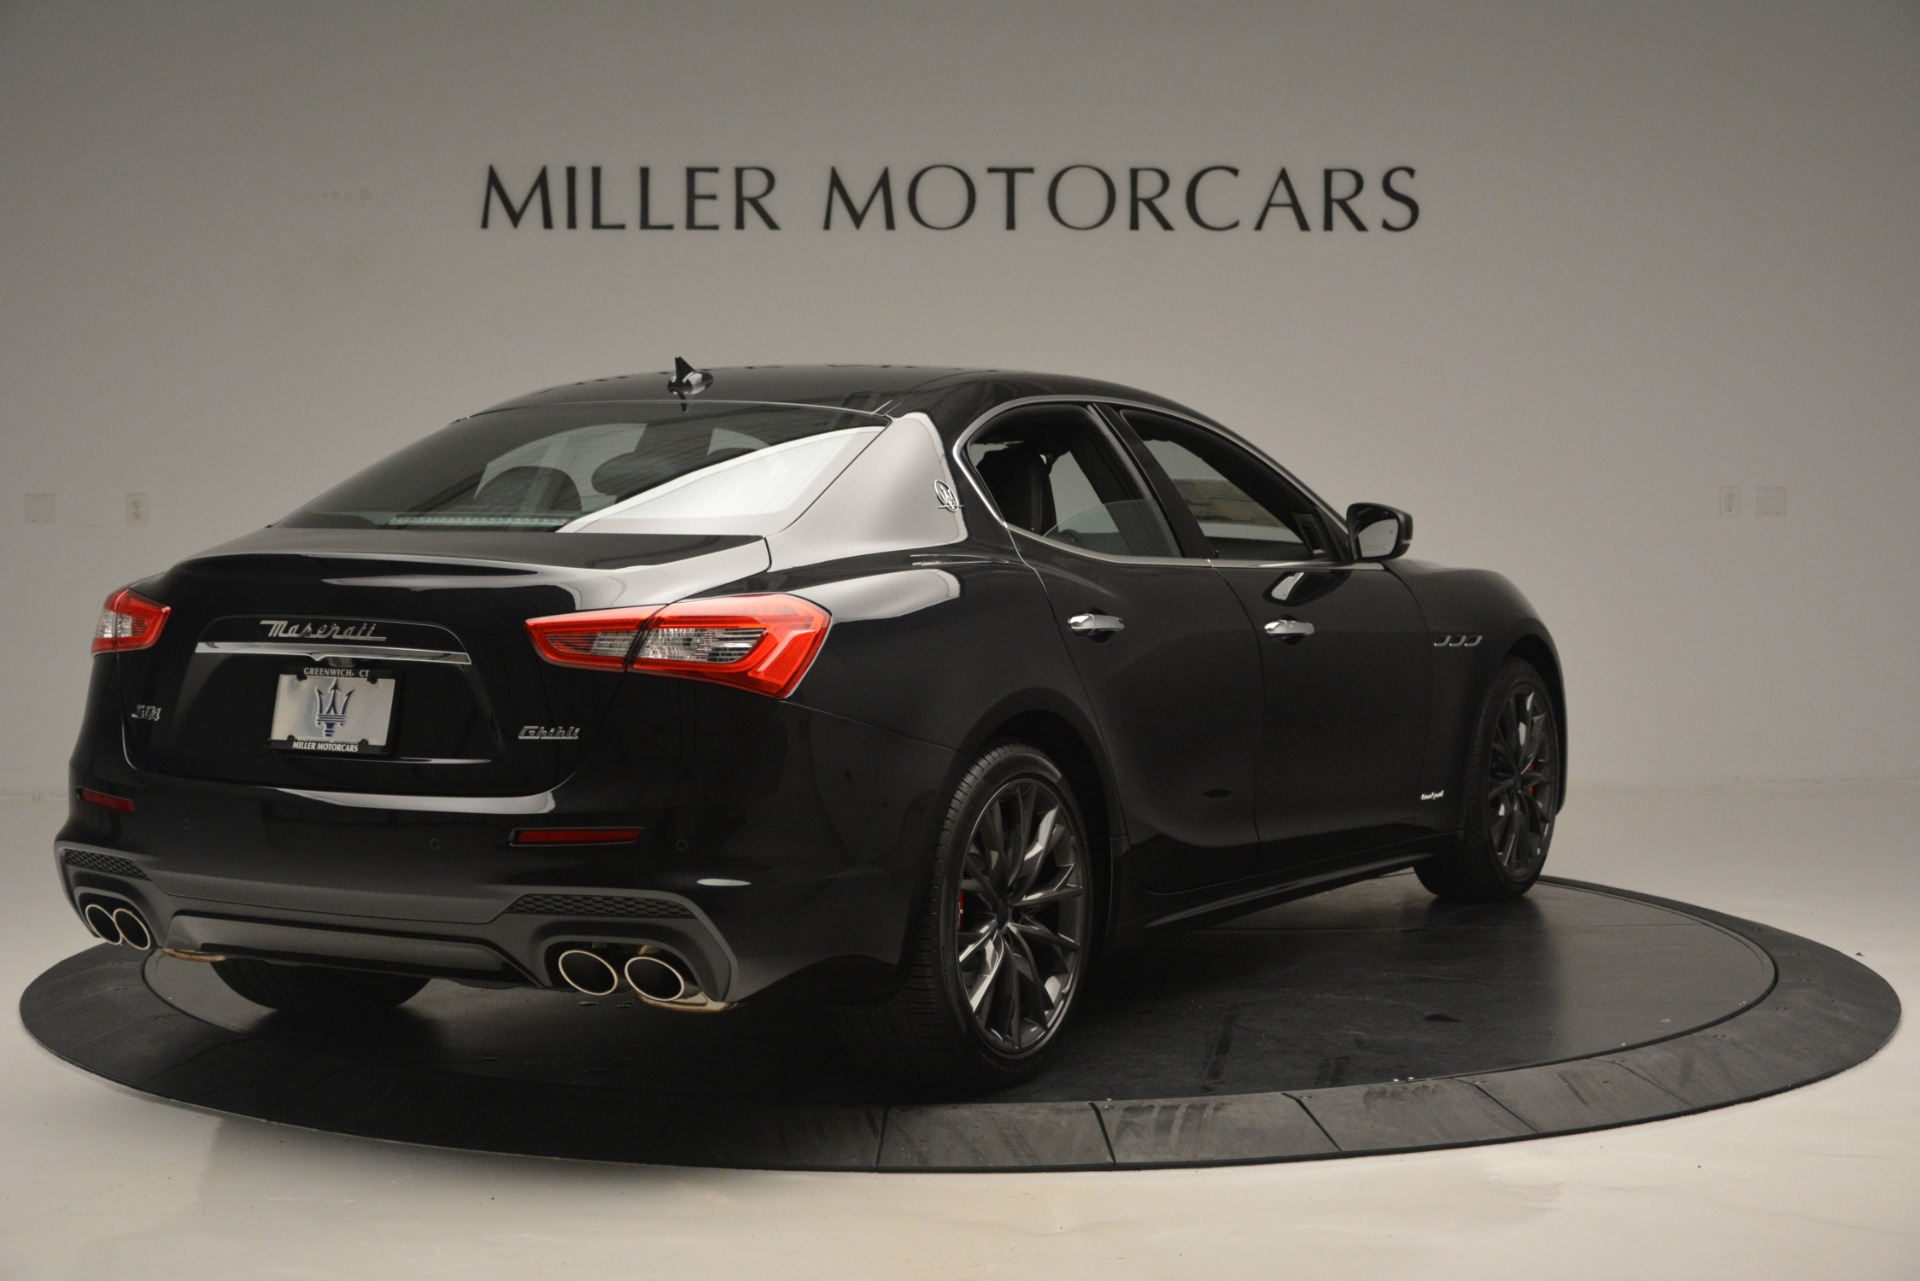 New 2019 Maserati Ghibli S Q4 GranSport For Sale In Westport, CT 2588_p7